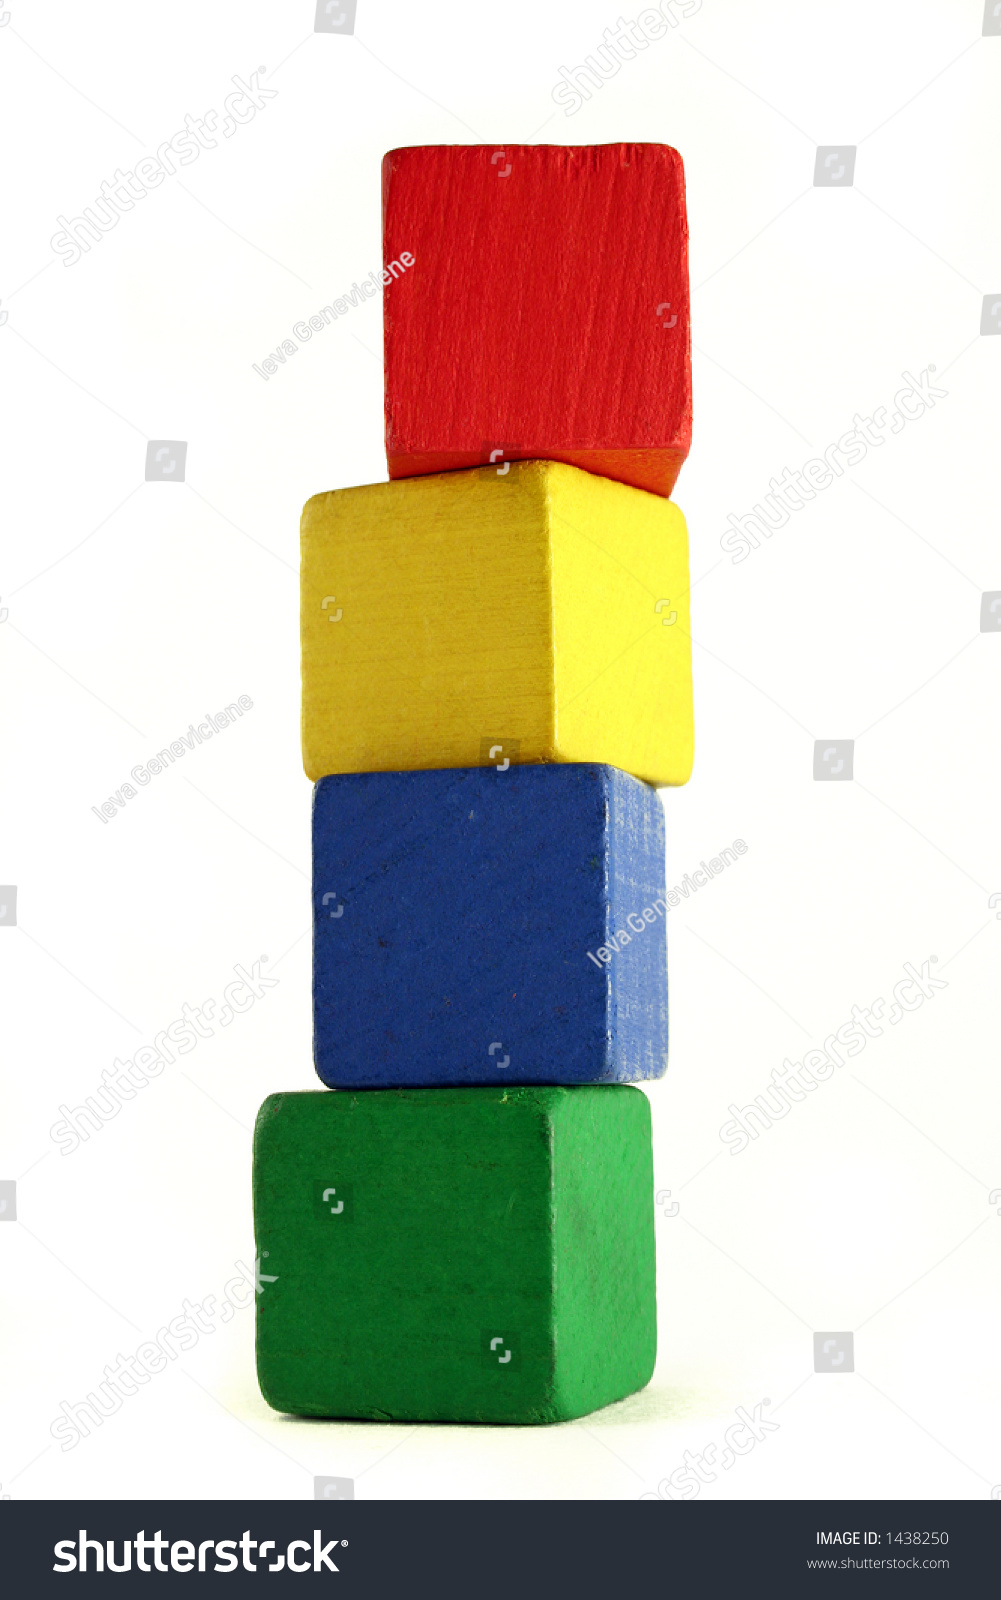 four wooden childrens blocks different colors stock photo